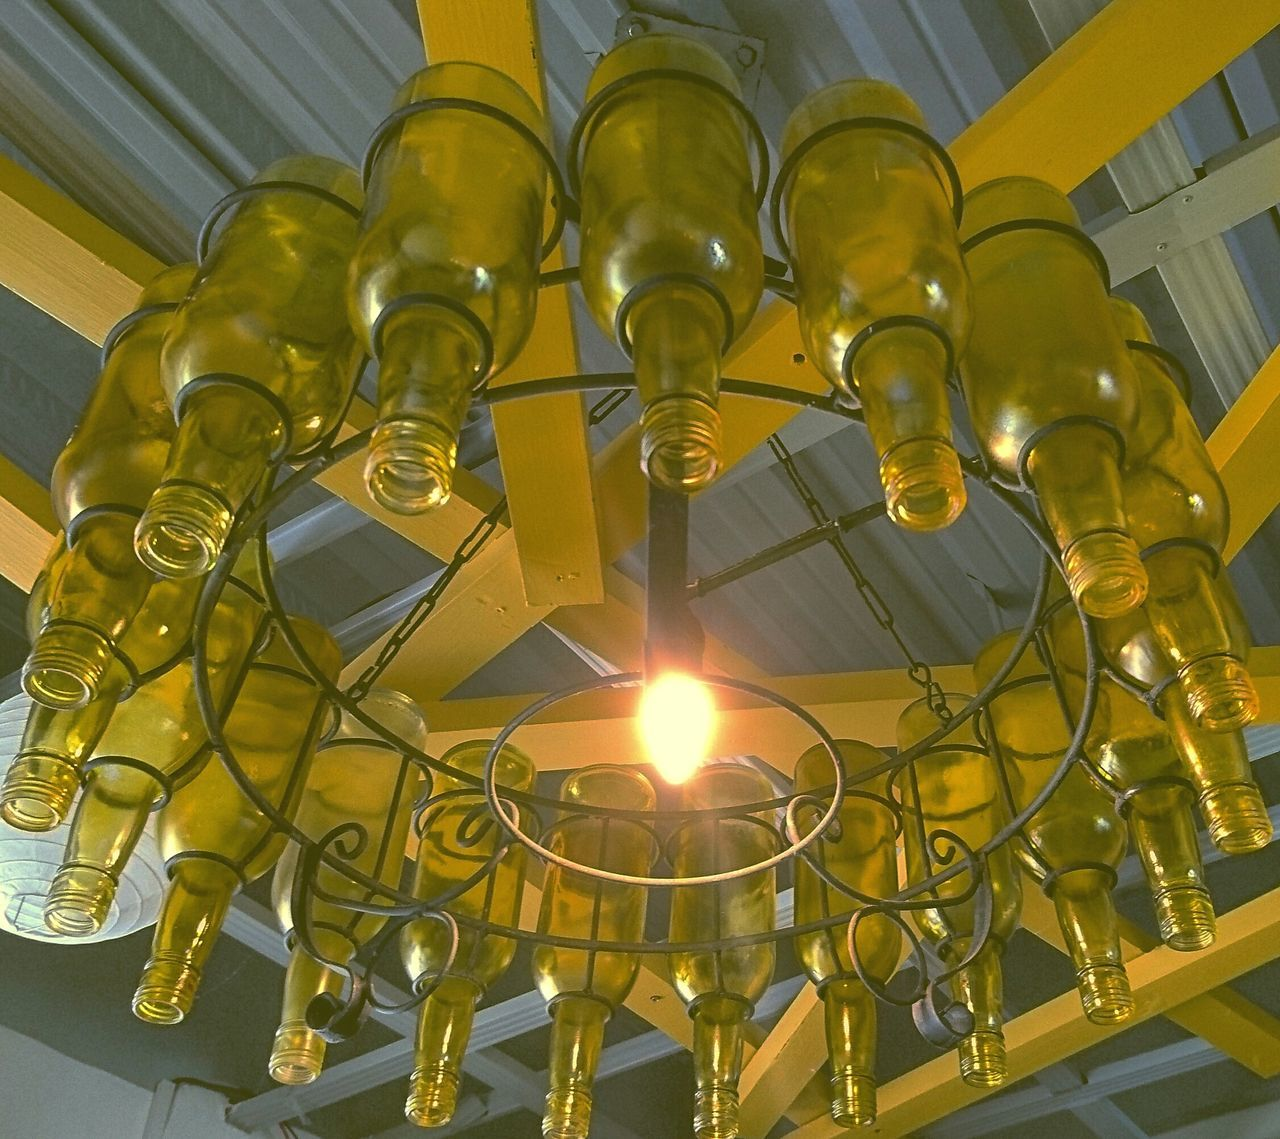 I'm gonna ssswwwiiinnggg...😎😂 The Chandelier at Yellow Lantern Cafe Antipolo City Philippines Interior Design Decor 43 Golden Moments Yellow Light Fixture Bottle Chandelier Eyeem Philippines Travel Photo Mobileshot Sony Shot XPERIA Cafe Fine Art Photography Showcase July